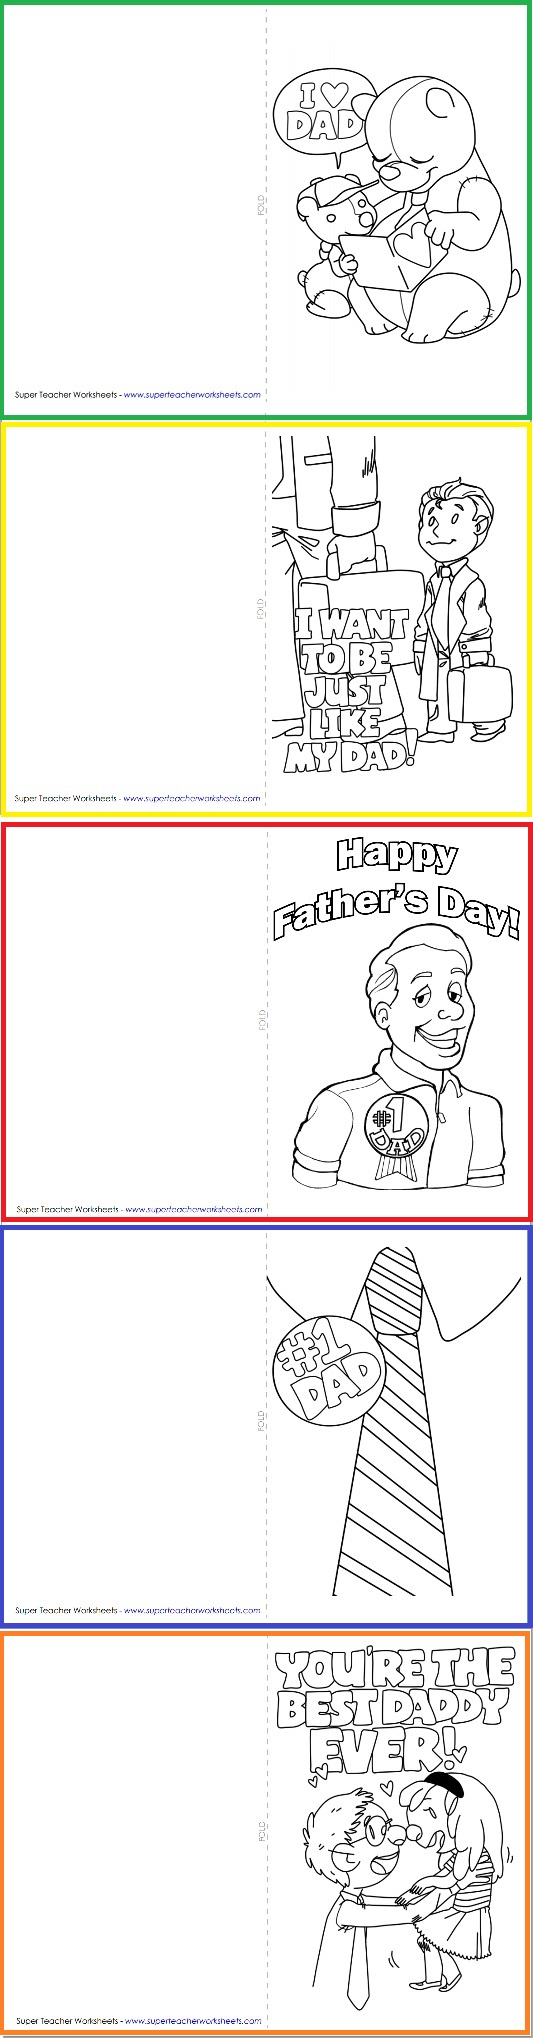 Almost time for Father\'s Day! | Holidays - Super Teacher Worksheets ...